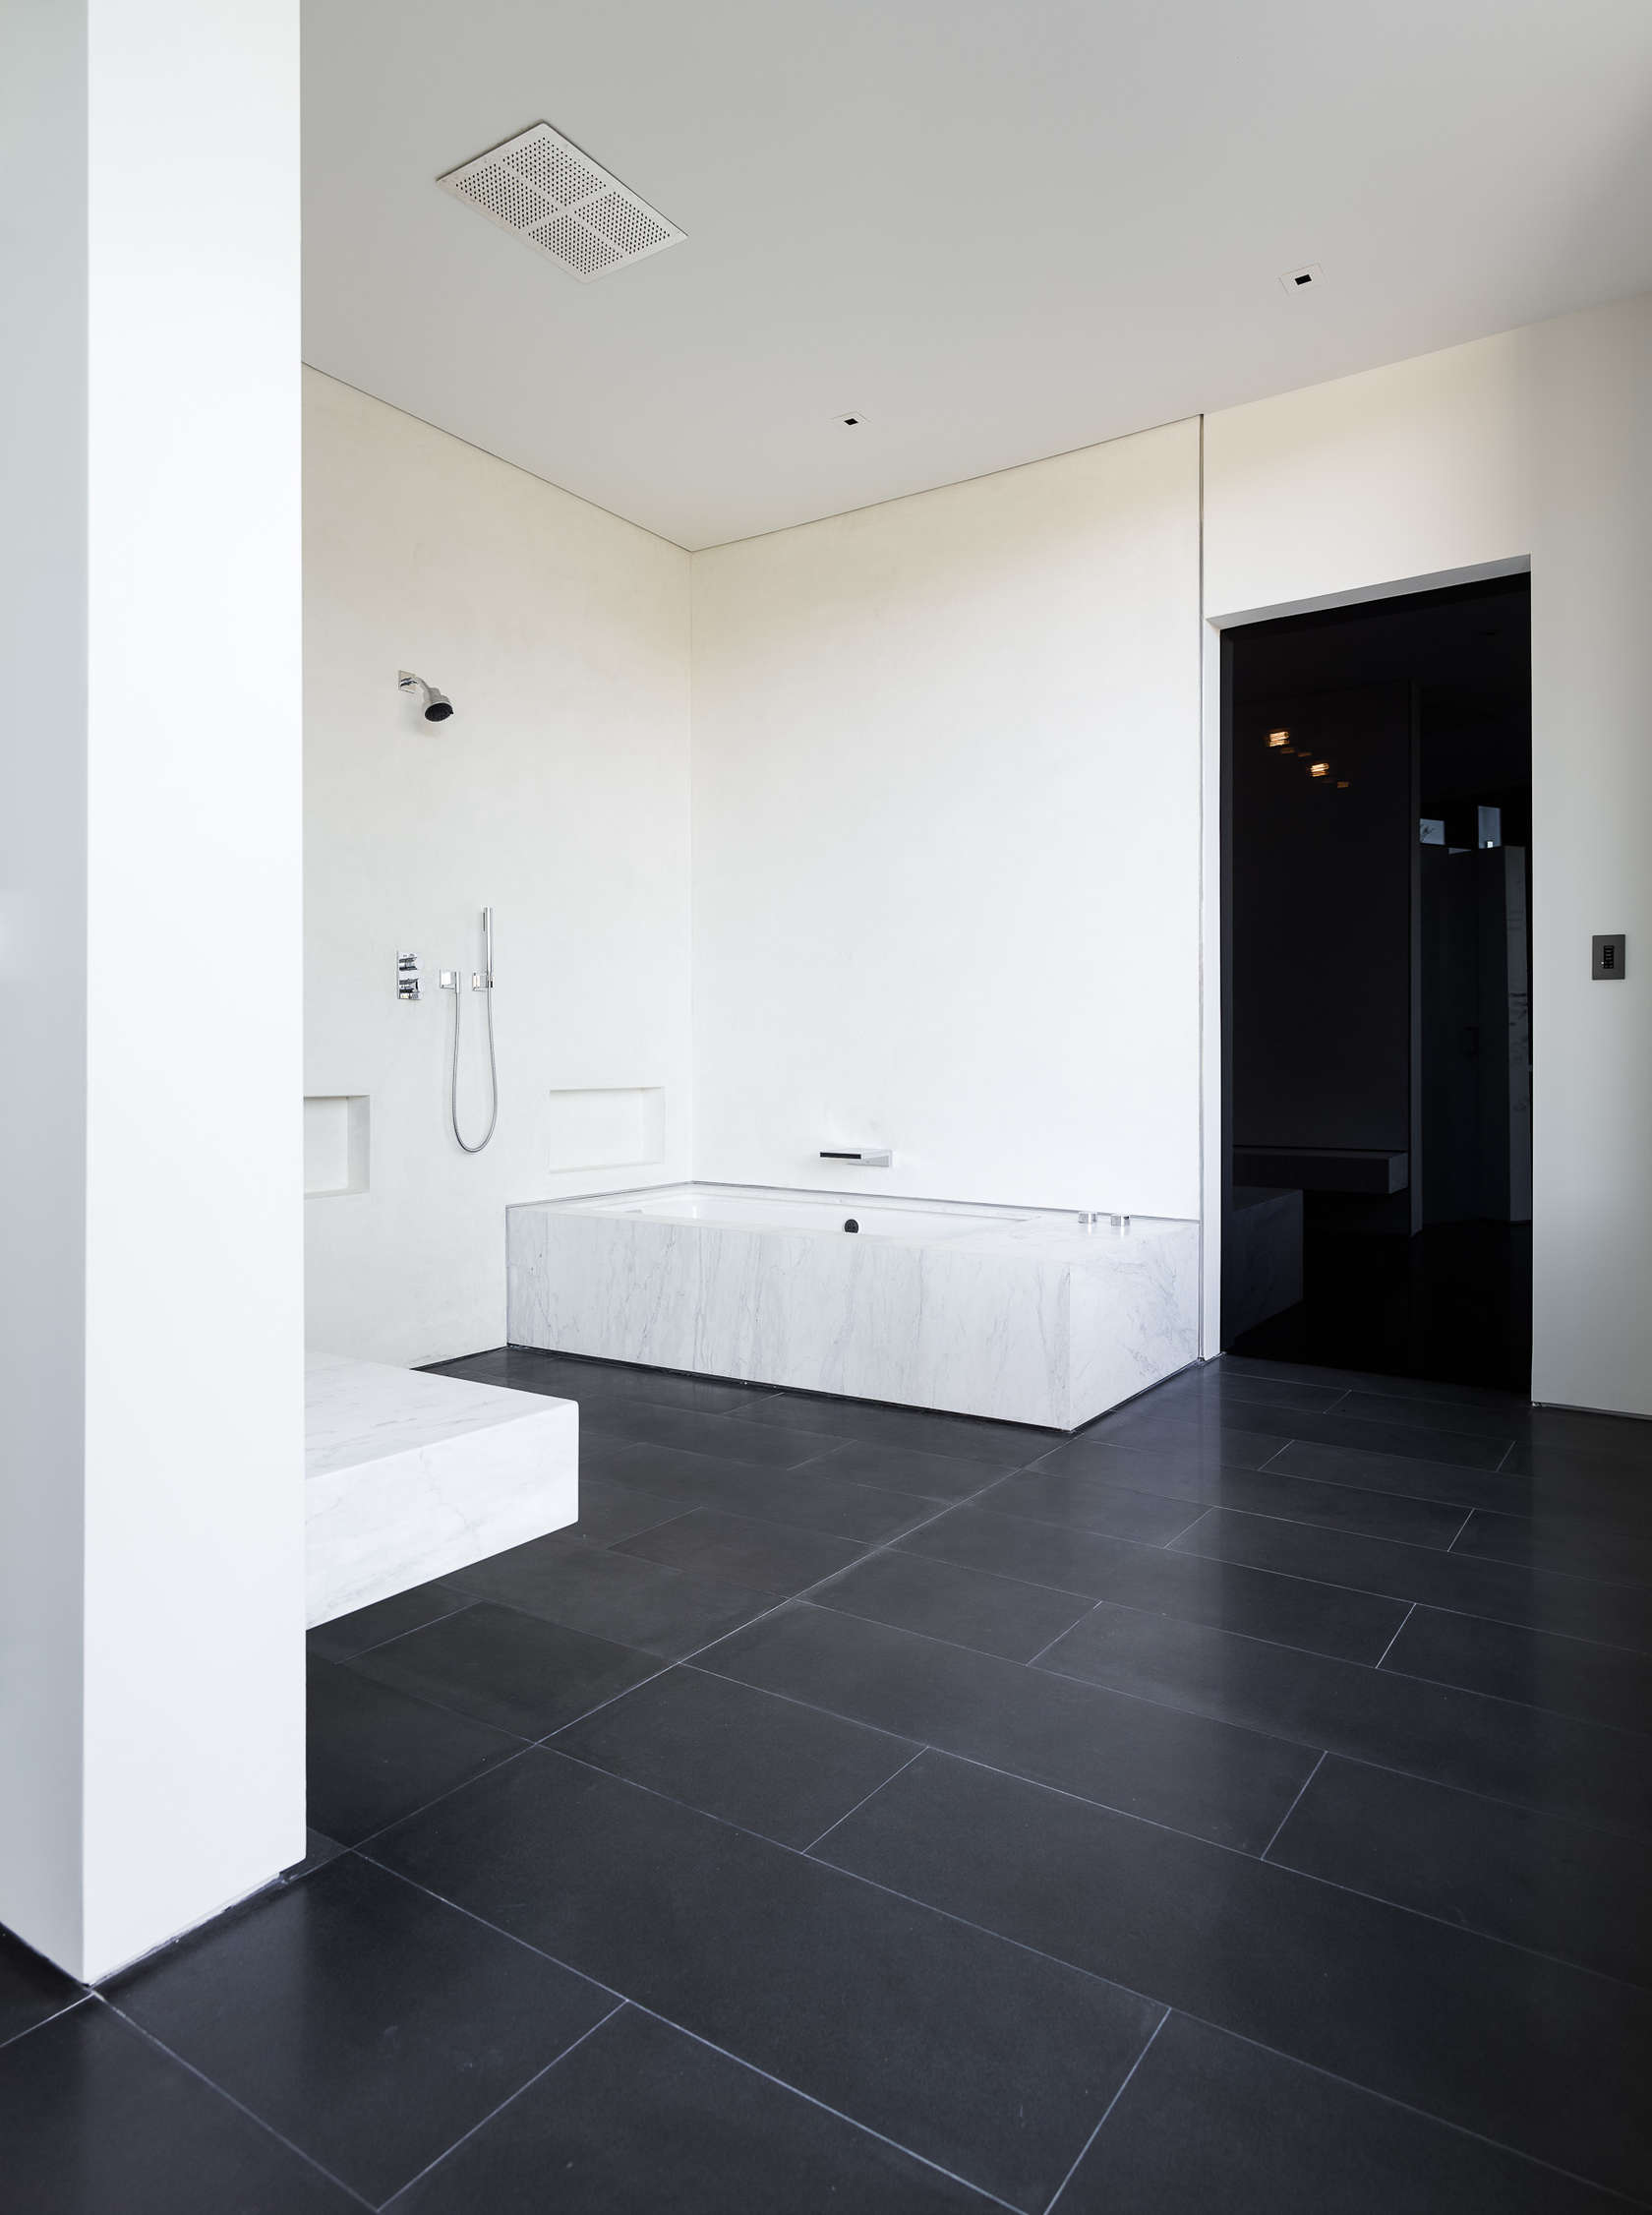 Black Tile Bathroom - An upside down beverly hills home with a minimalist exterior